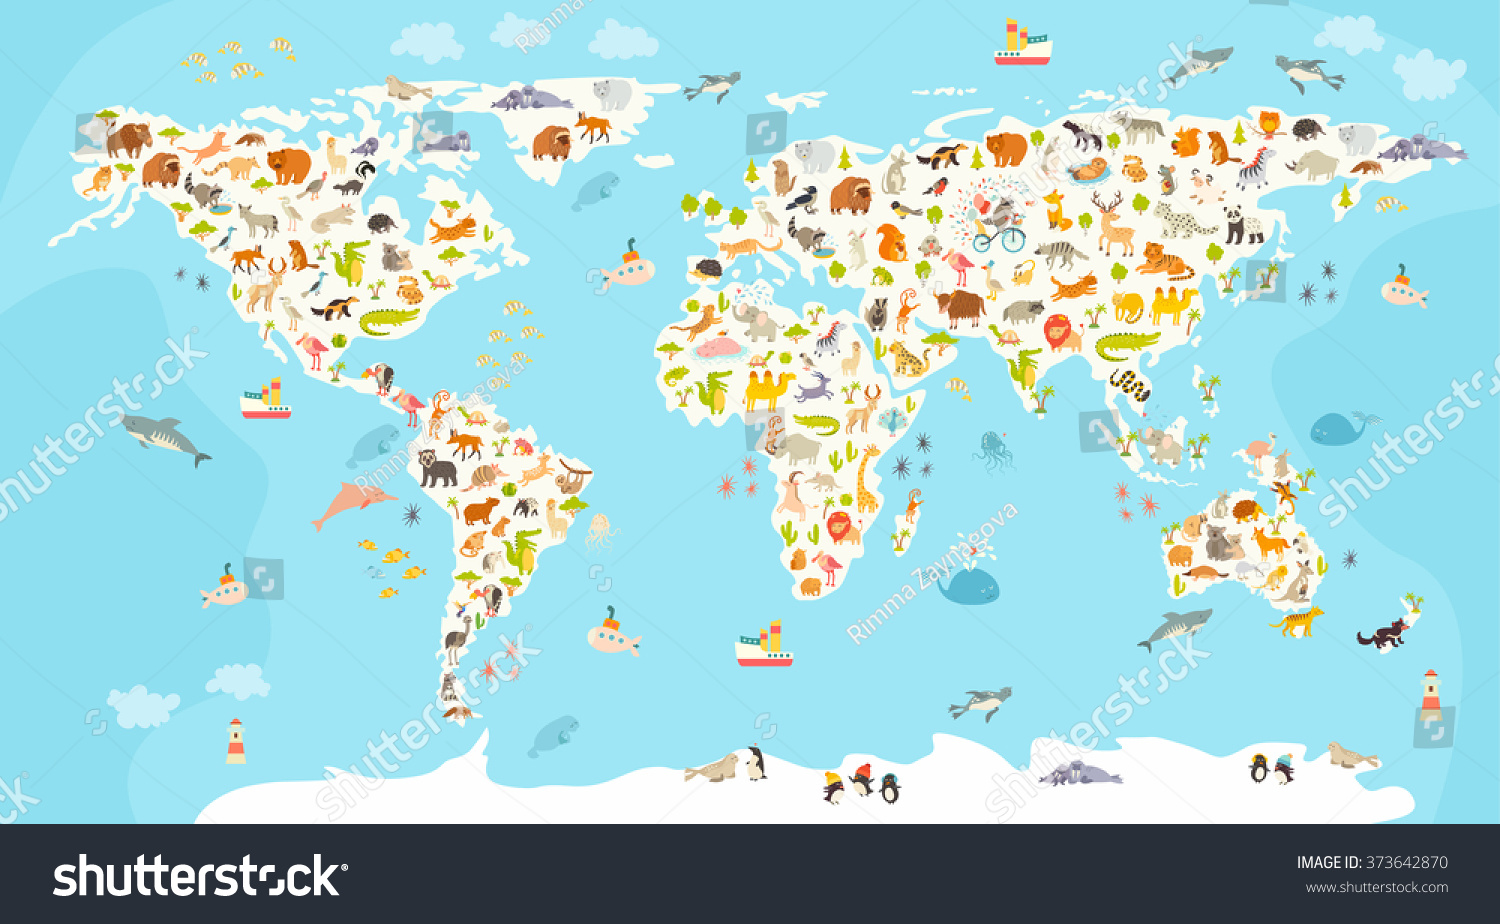 World mammal map beautiful cheerful colorful vectores en stock world mammal map beautiful cheerful colorful vector illustration for children and kids preschool gumiabroncs Gallery